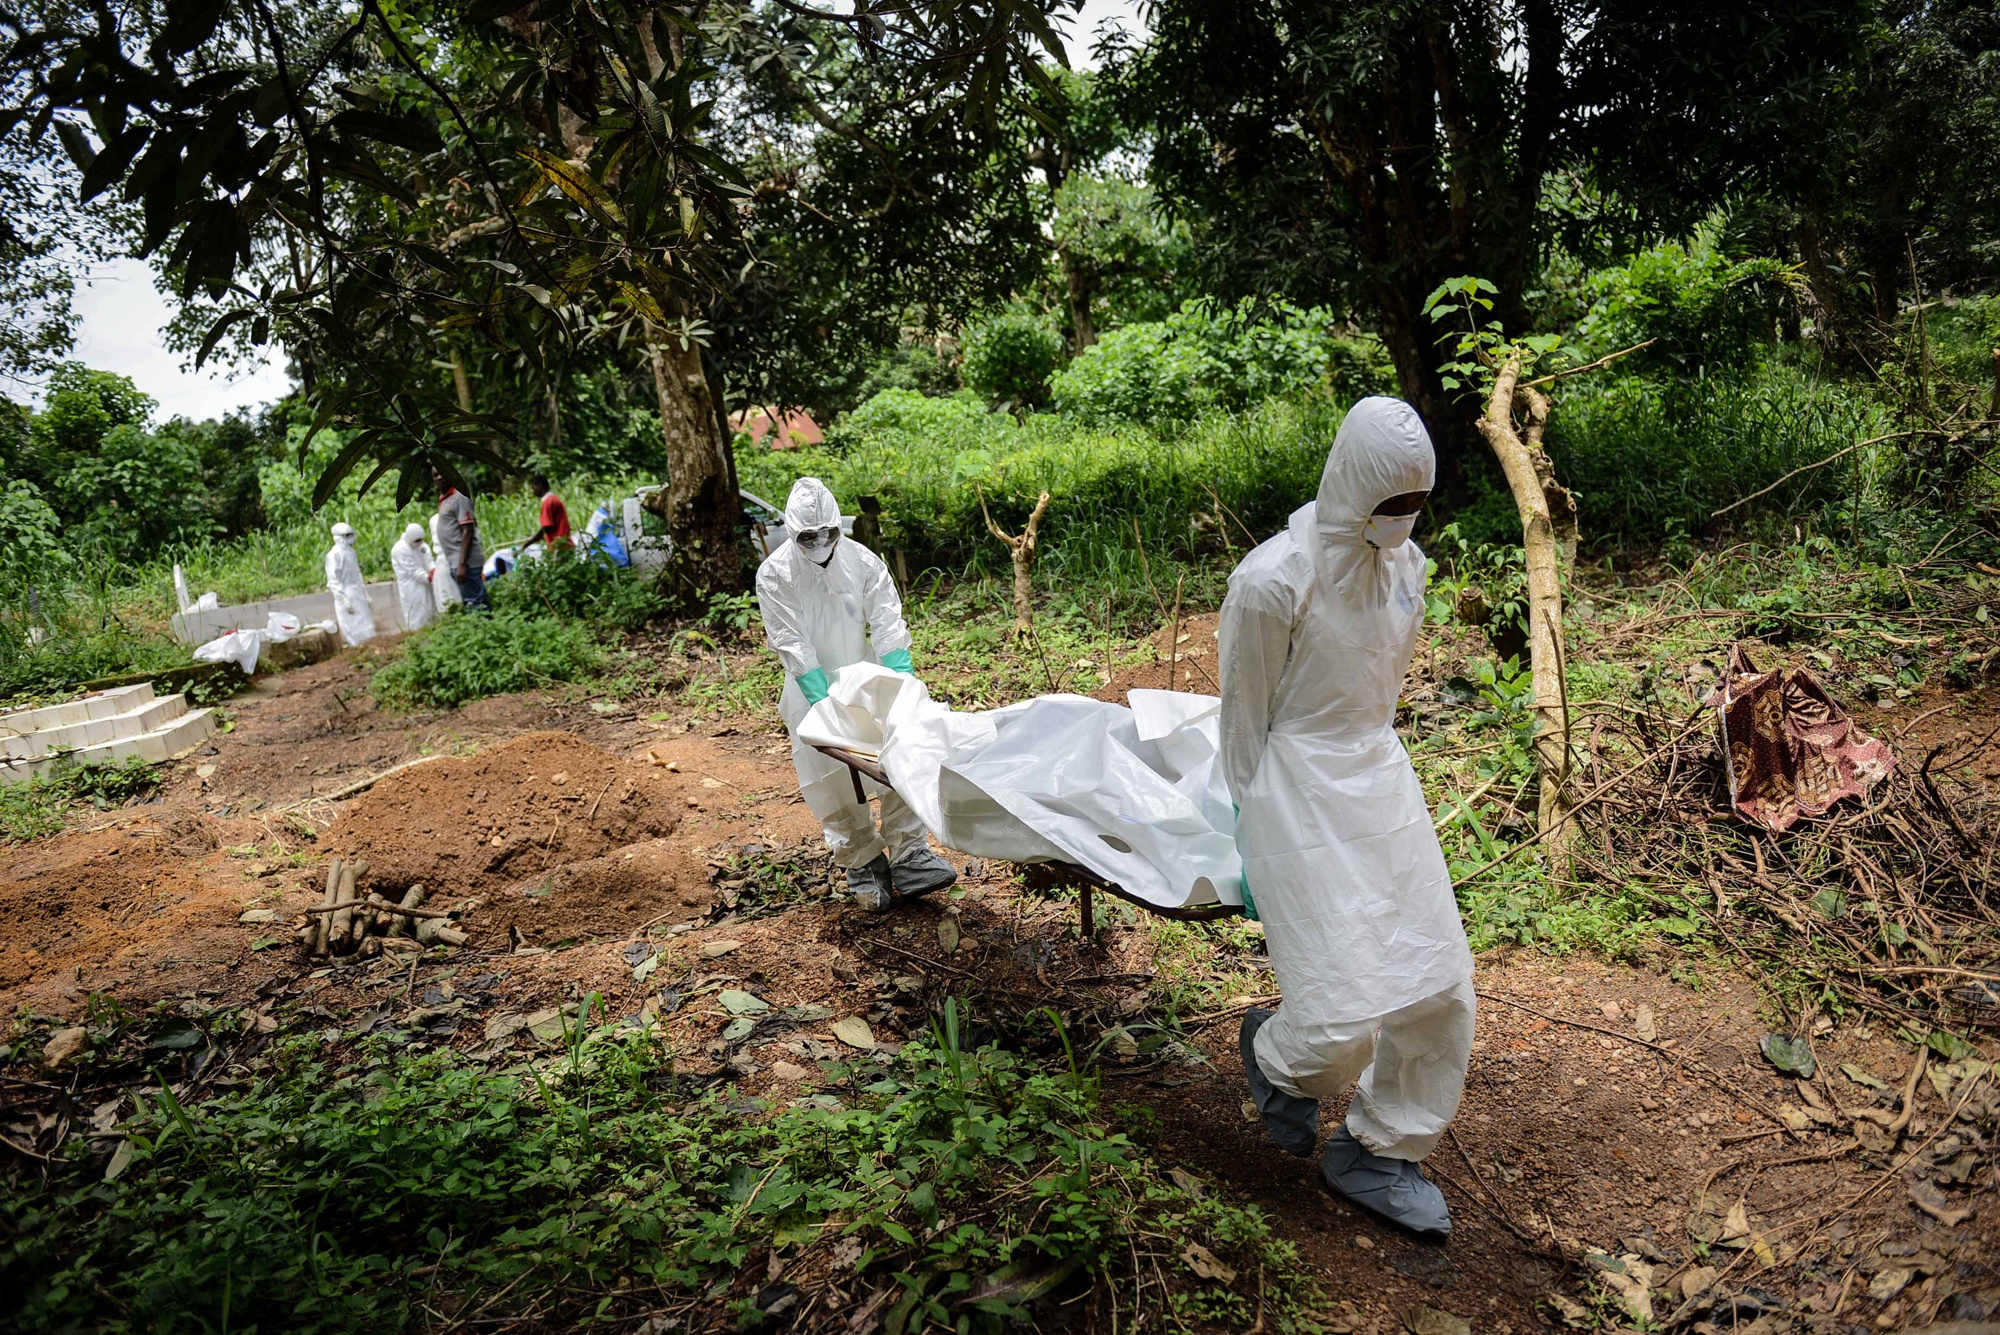 A group of young volunteers wear special uniforms for the burial of Ebola victims in Kenema, Sierra Leone on Aug. 24, 2014.